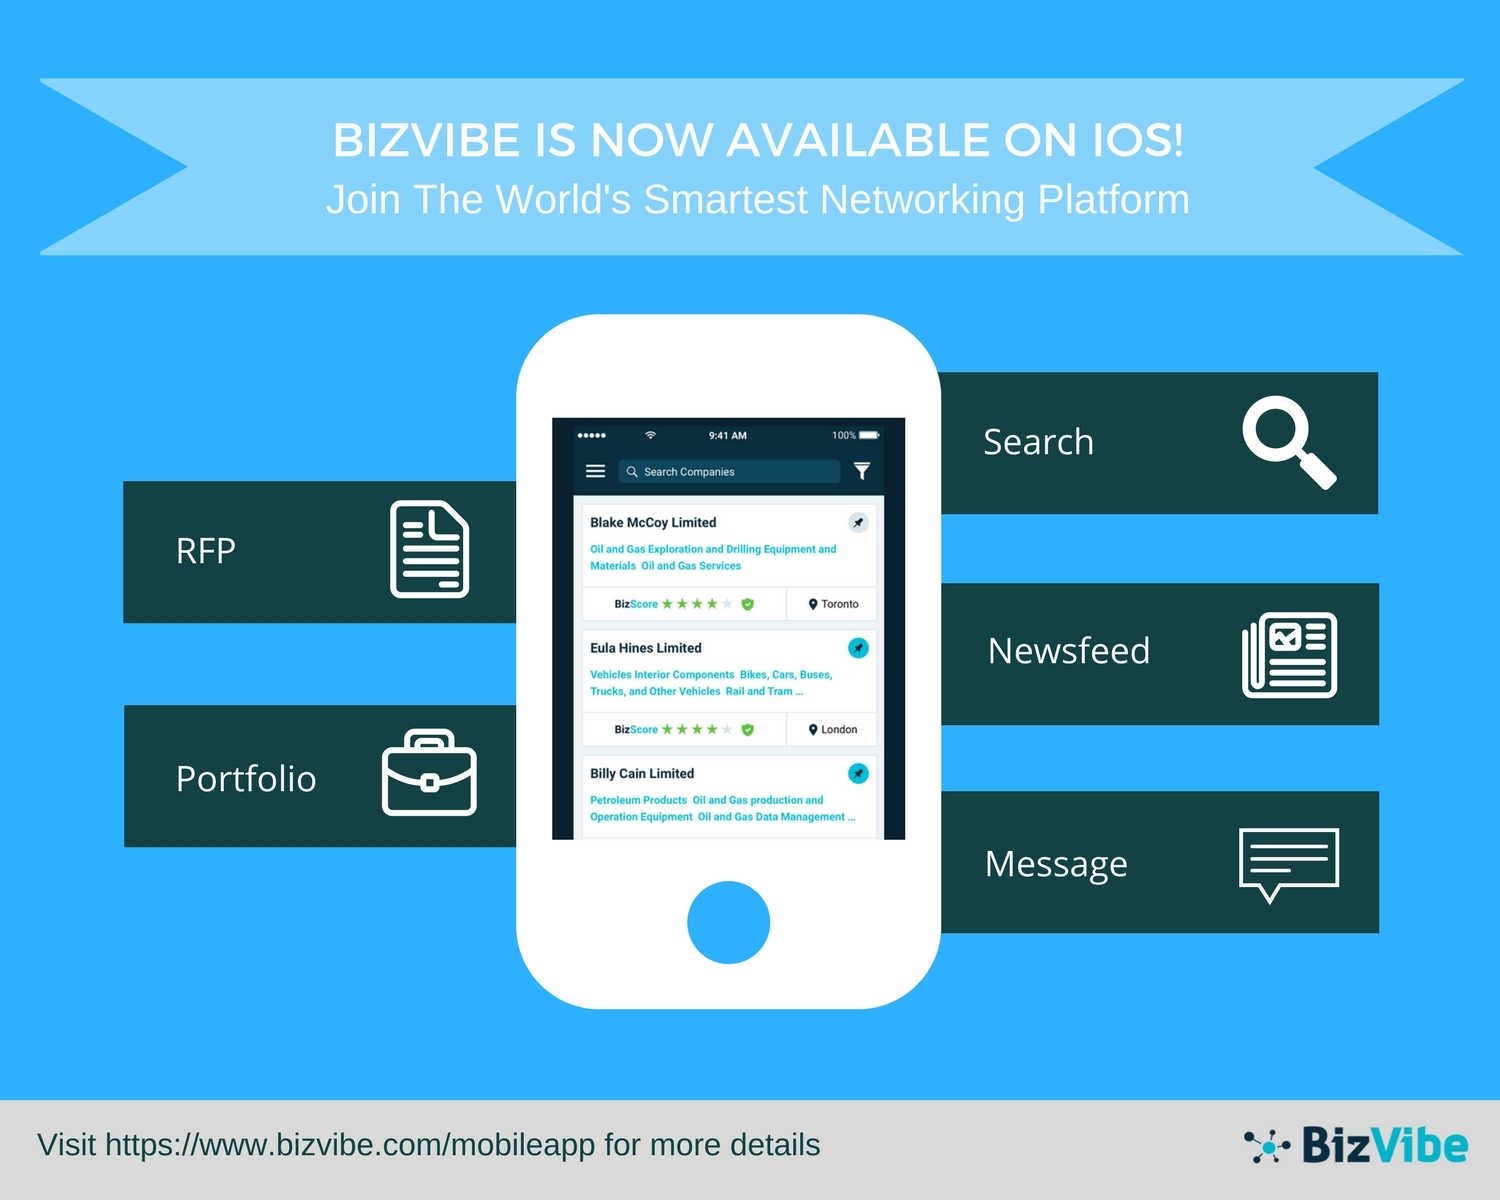 BizVibe announces their B2B marketplace platform is now available for iOS. (Graphic: Business Wire)